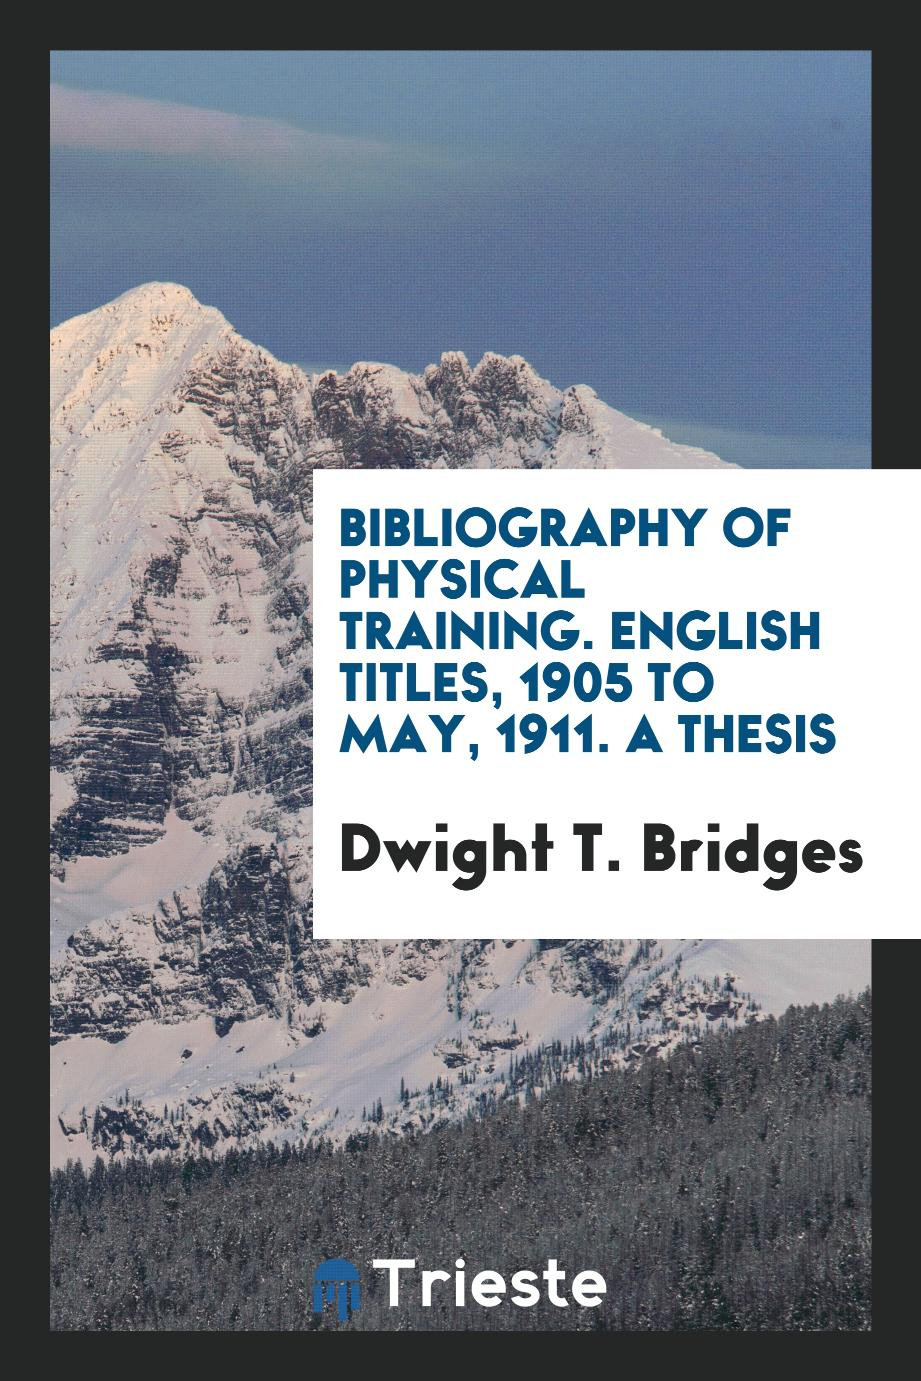 Bibliography of Physical Training. English Titles, 1905 to May, 1911. A Thesis